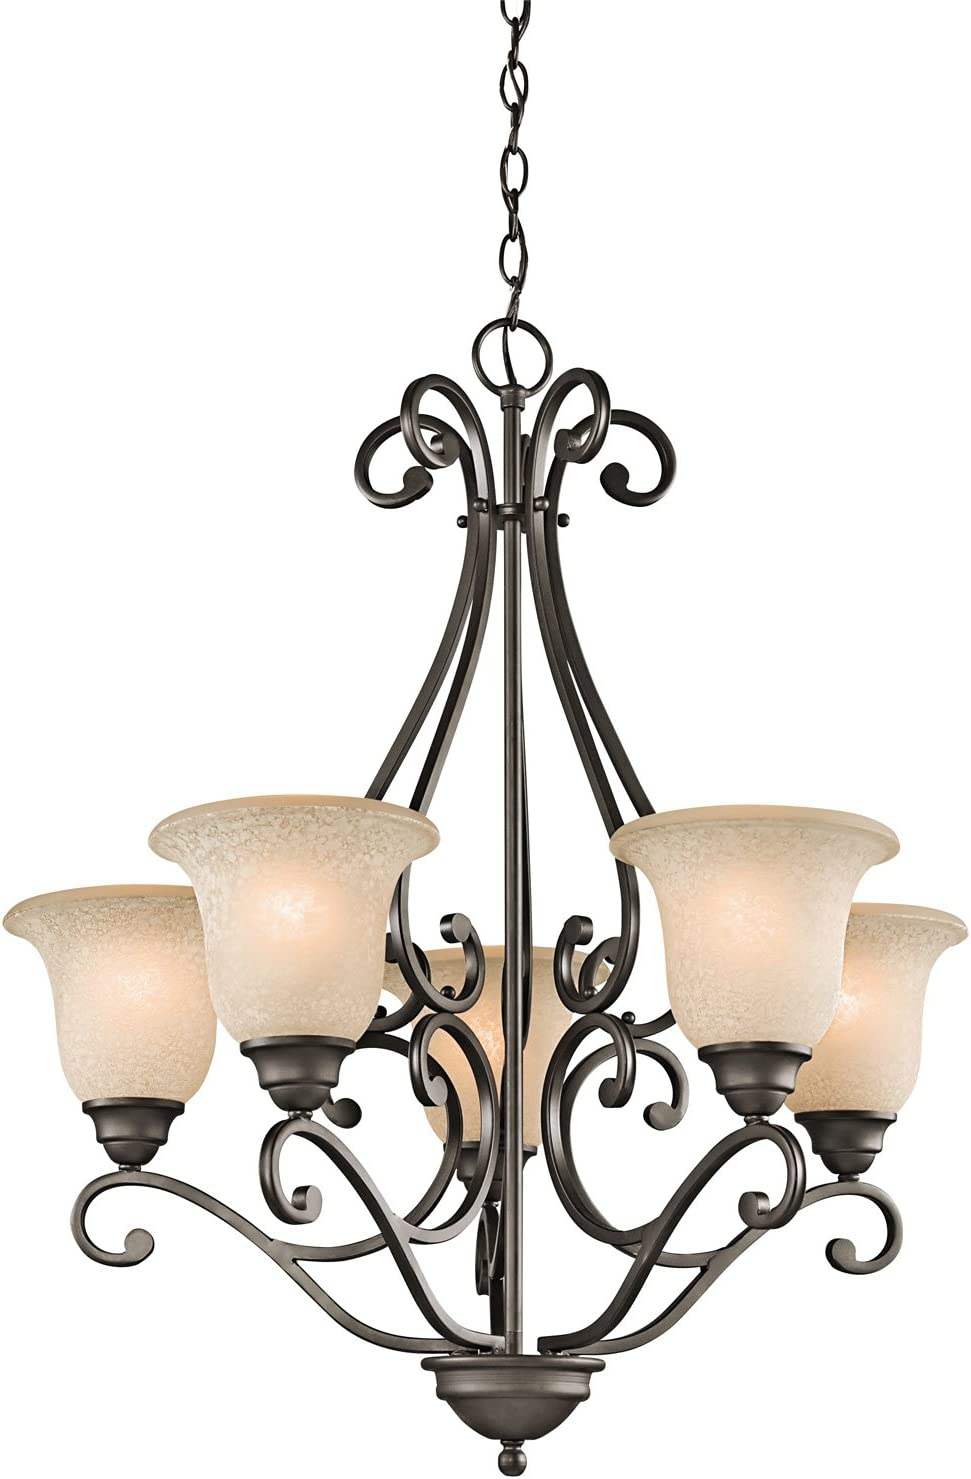 Kichler 43224OZ Camerena Chandeliers Lighting